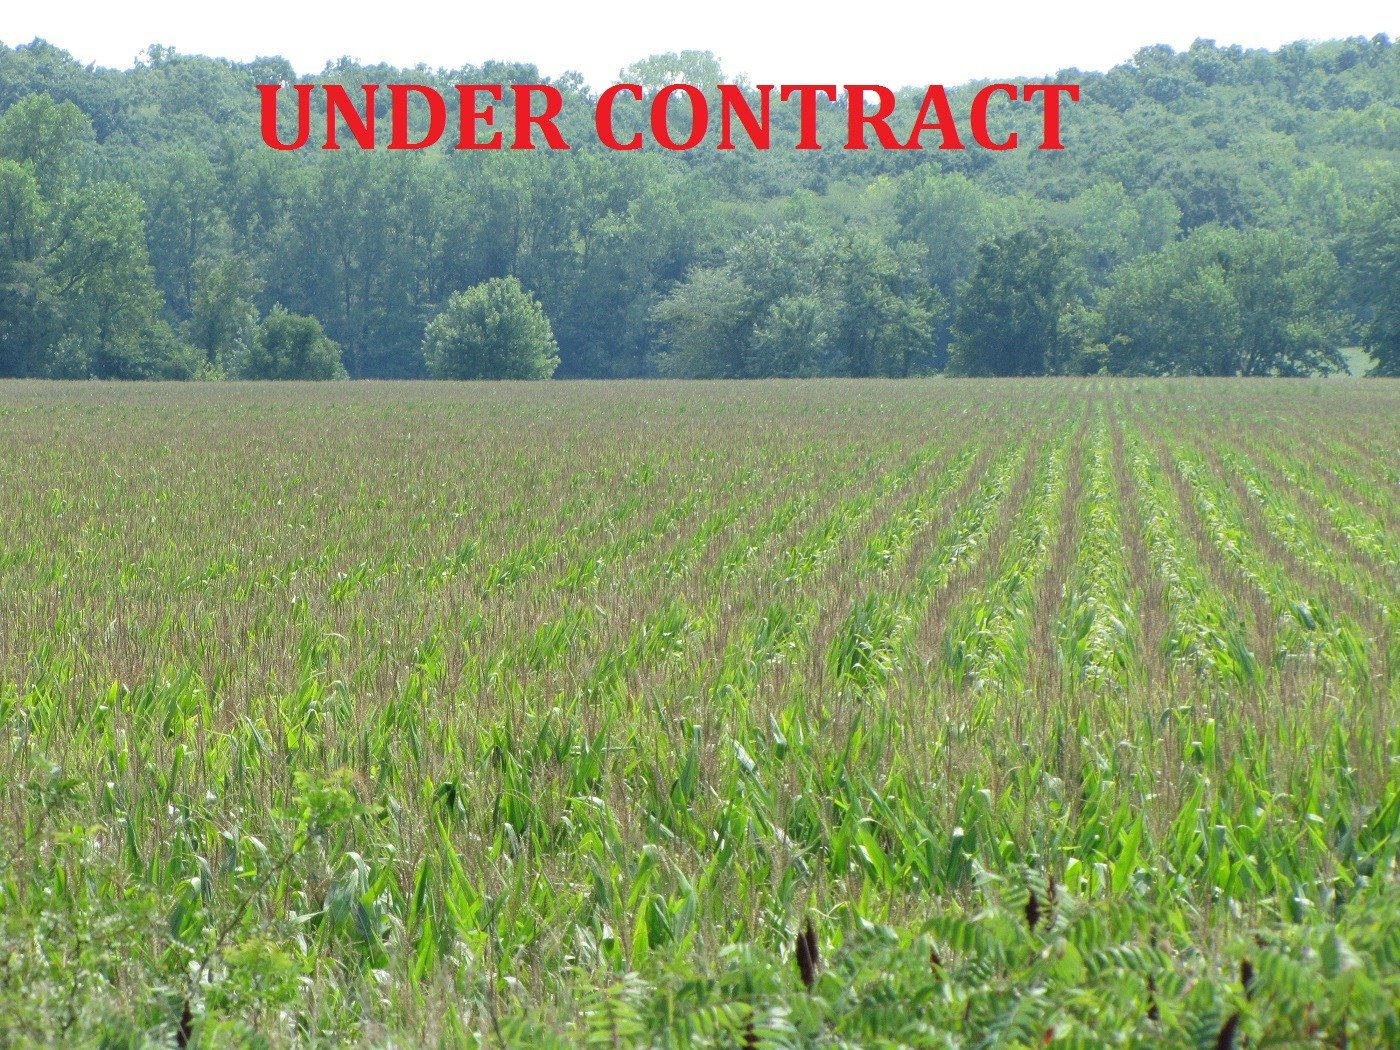 MISSOURI FARMLAND FOR SALE, ROW CROP FARM, HUNTING, INCOME